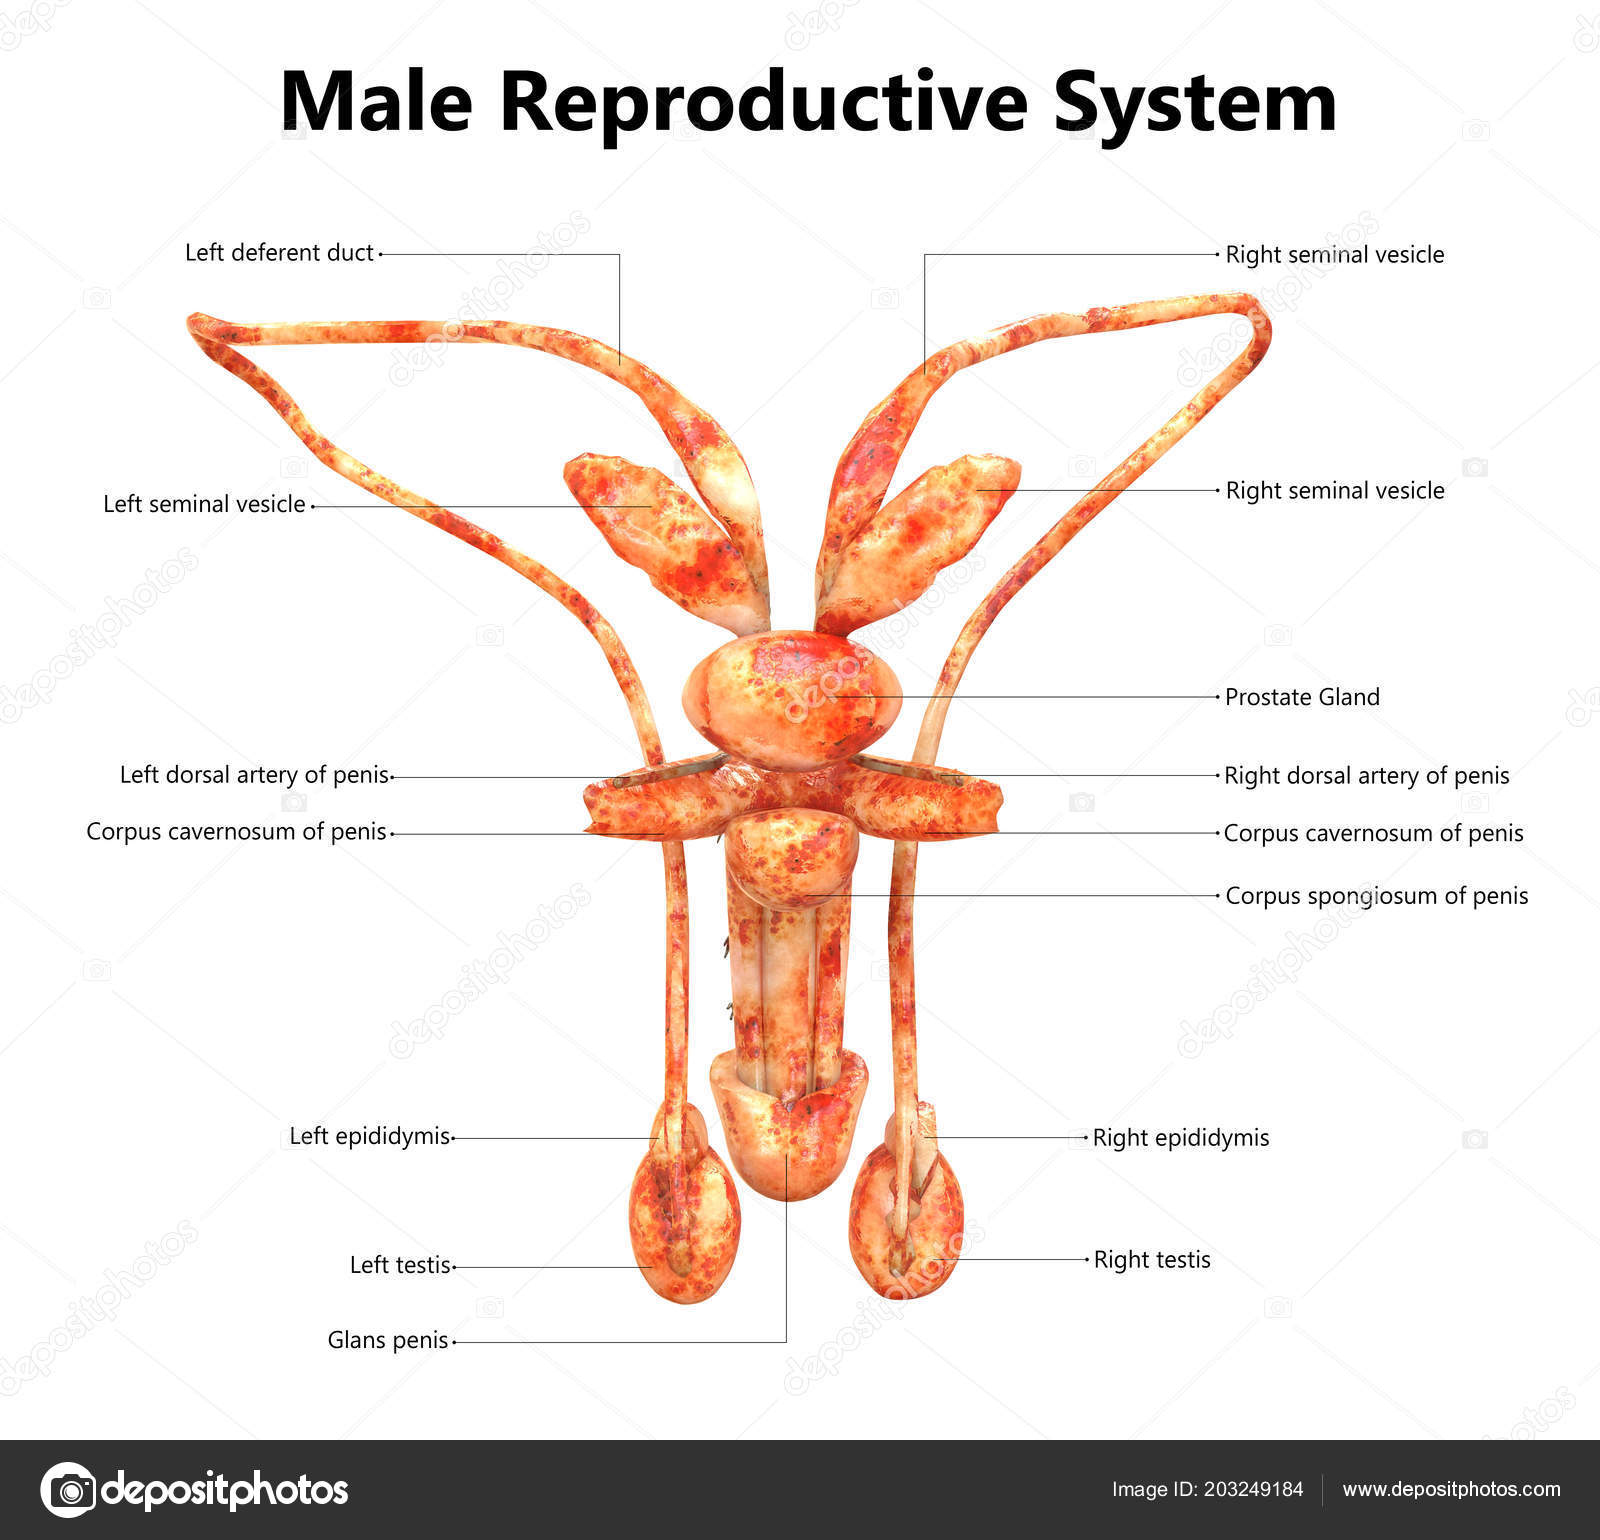 Male Reproductive System Labels Anatomy — Stock Photo © magicmine ...